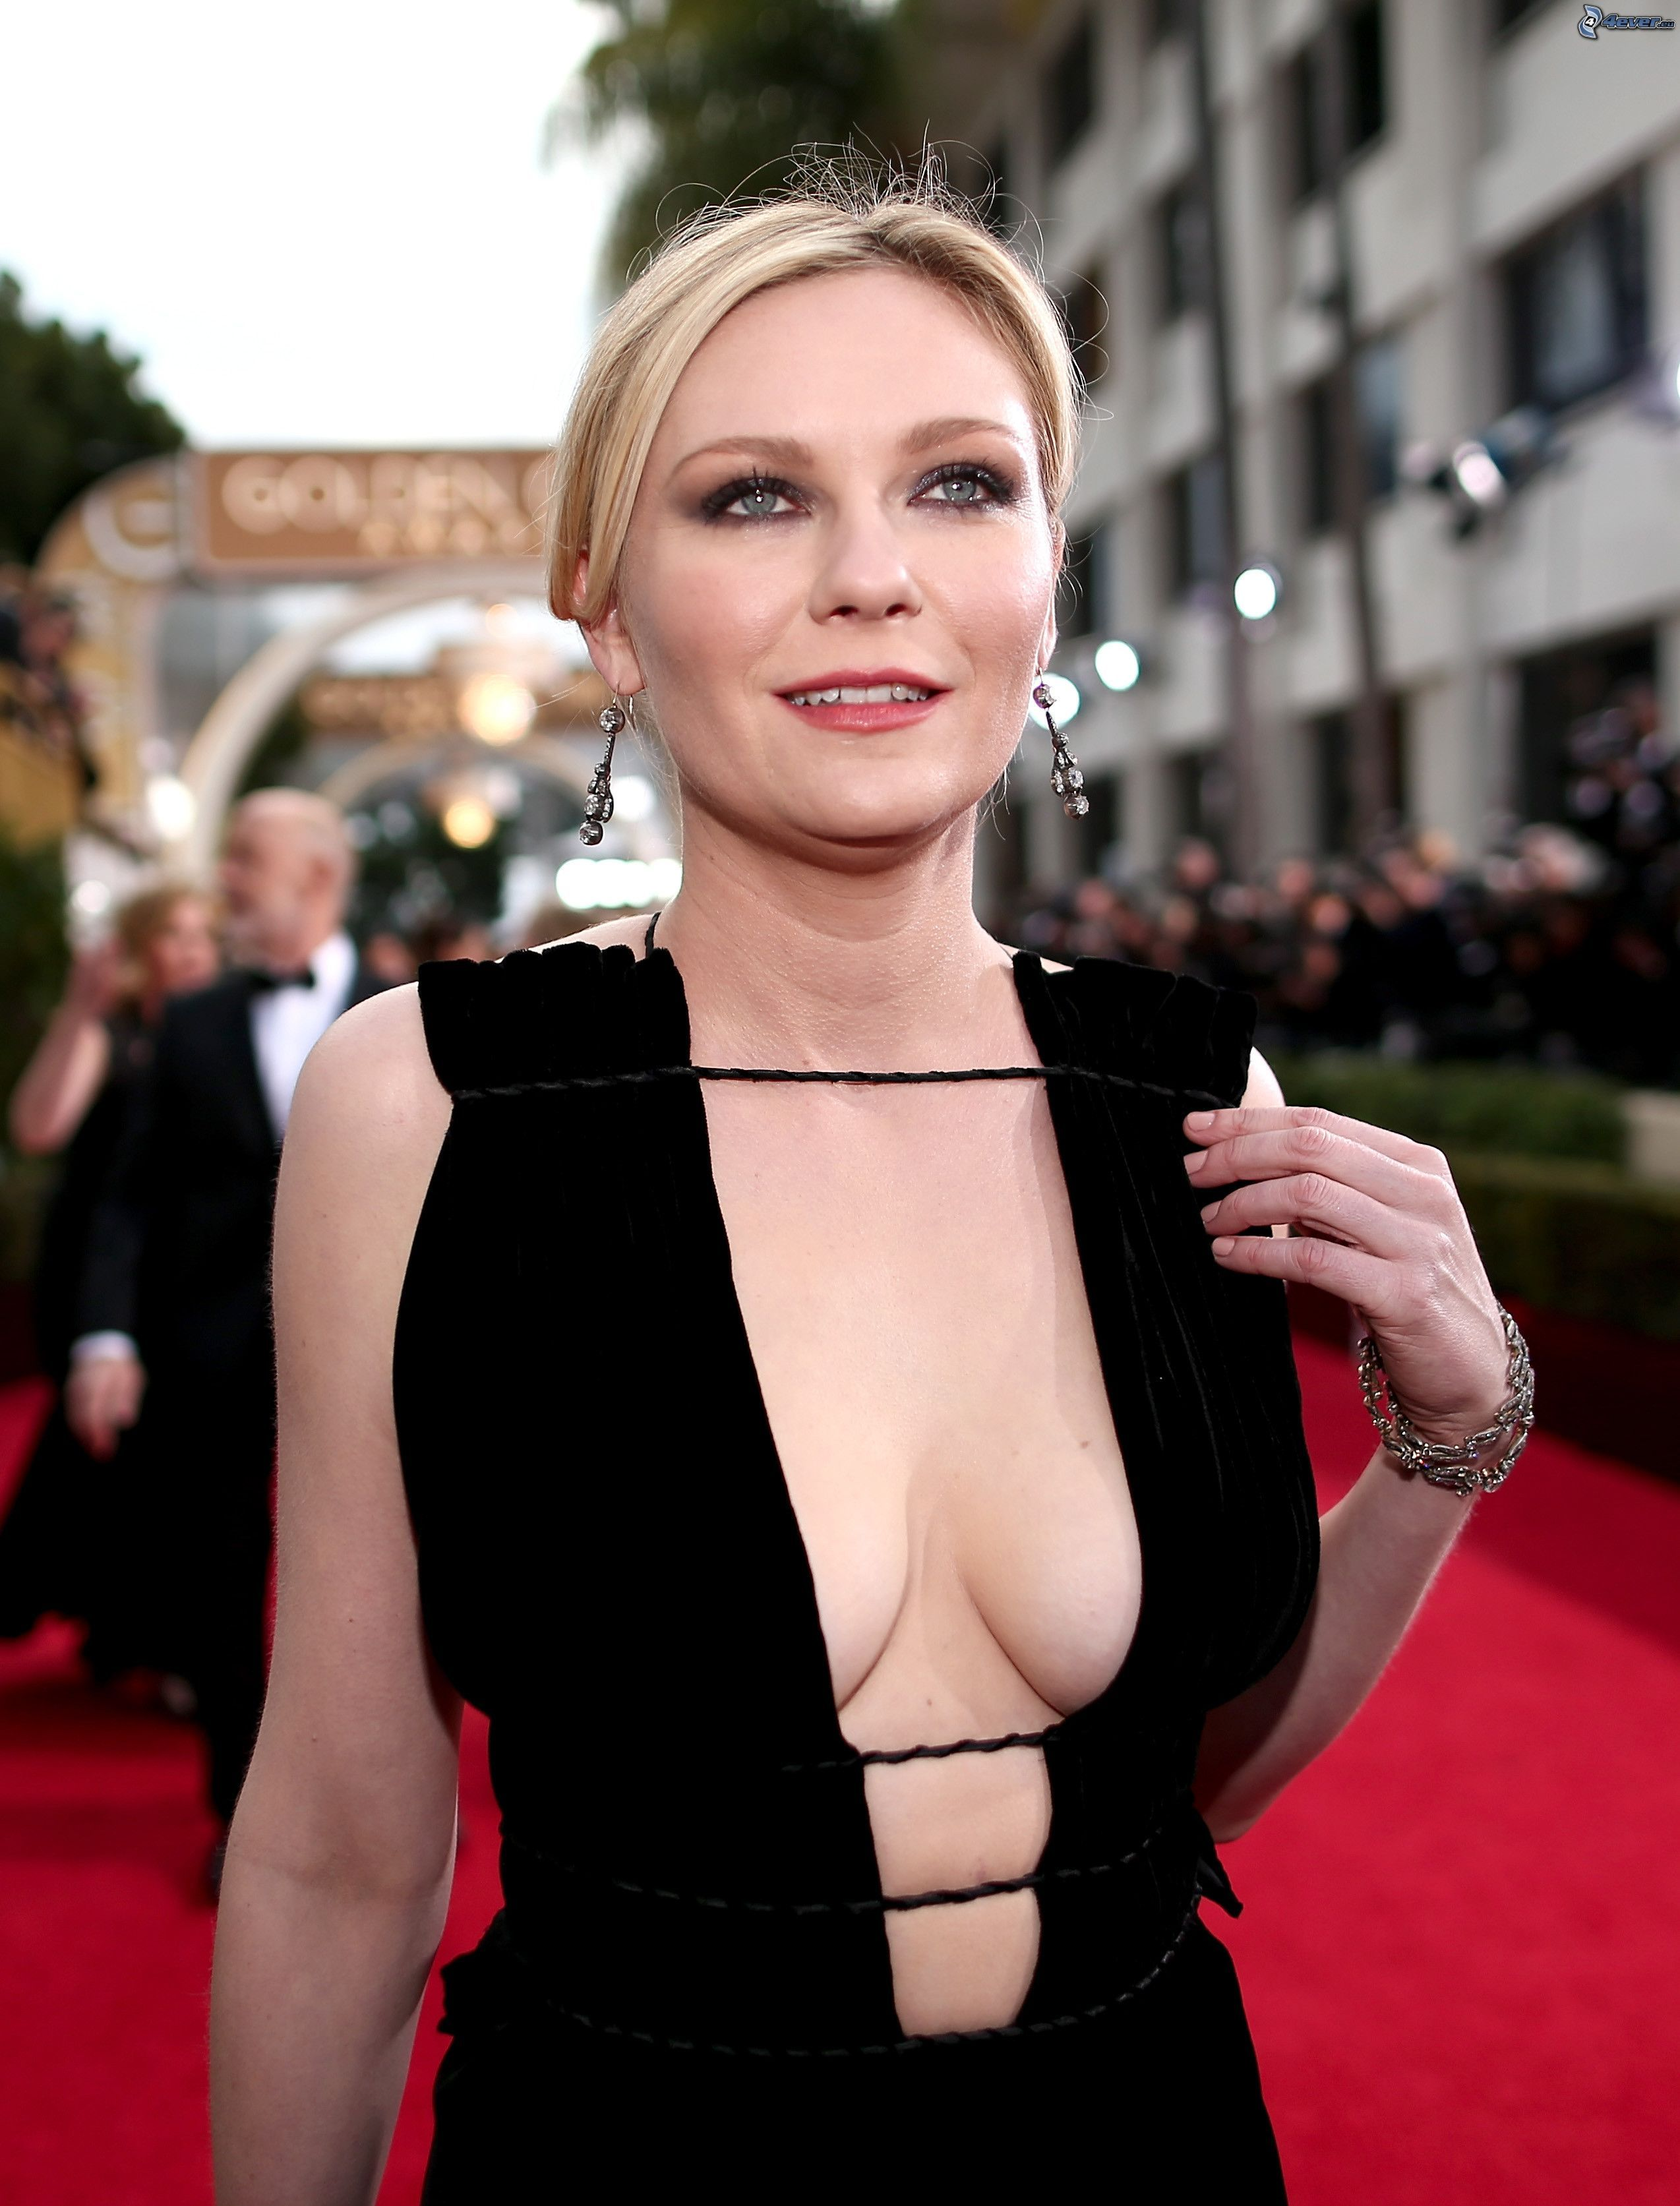 Kirsten dunst old lady tits new photo